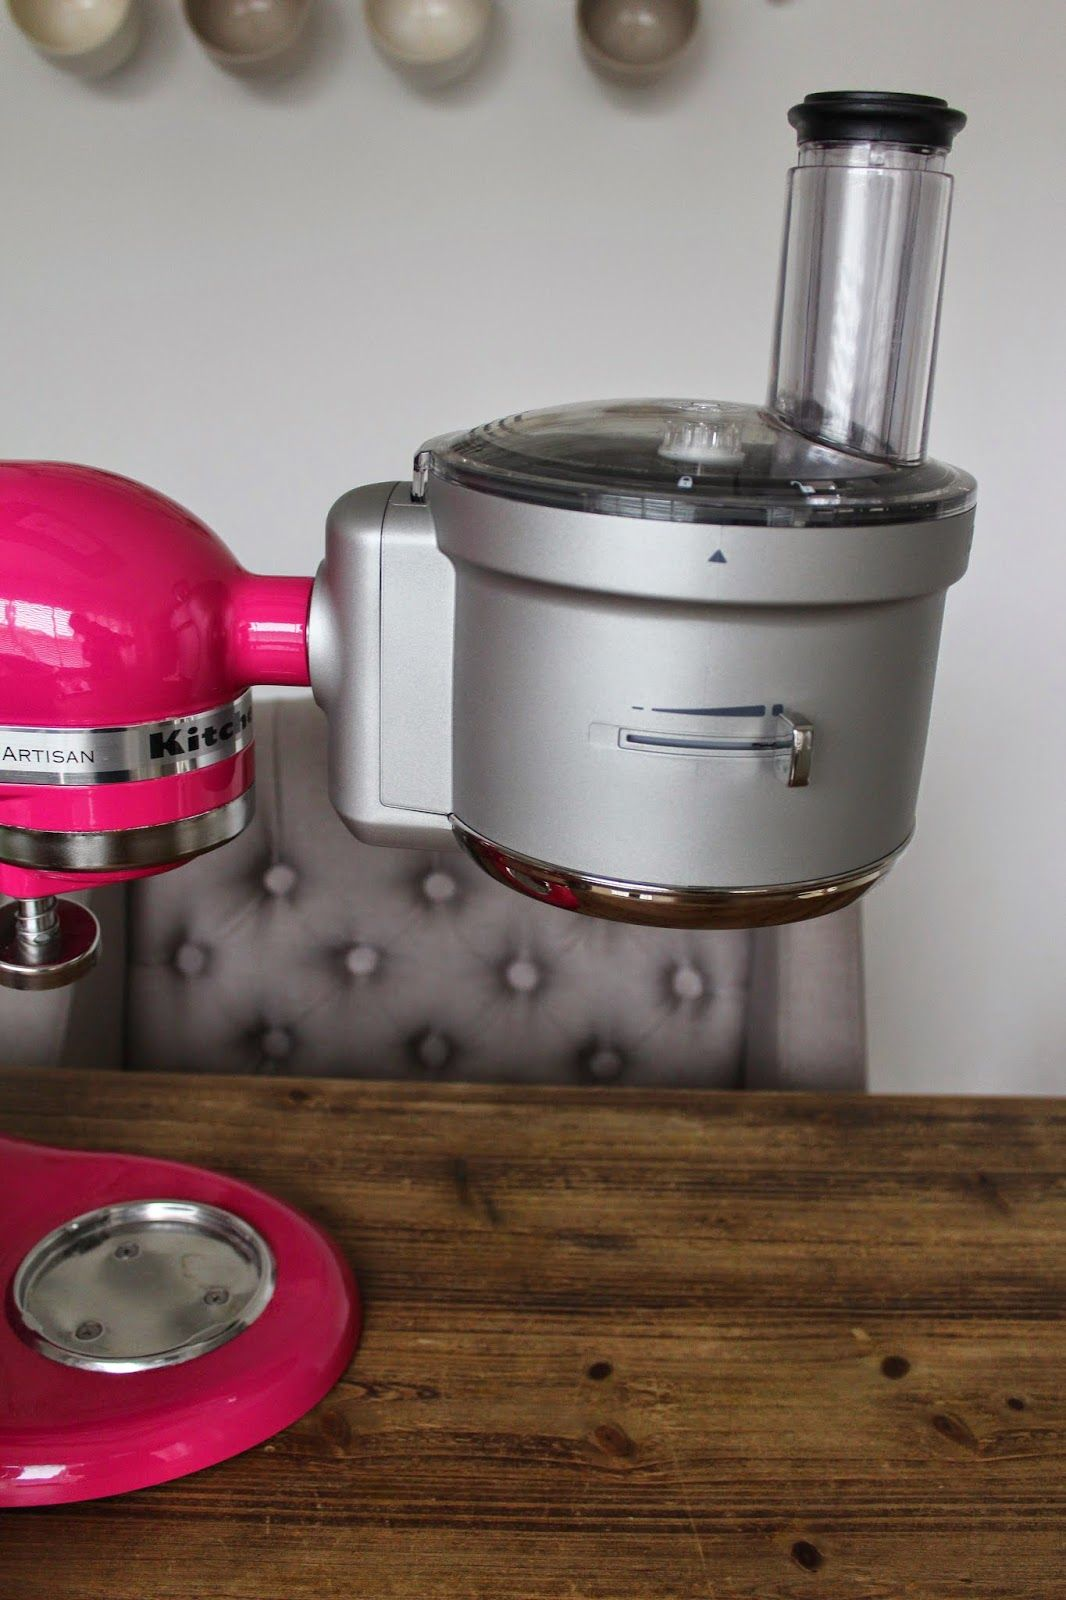 kitchen aid mixer reviews where to buy sinks kitchenaid attachment food processor review